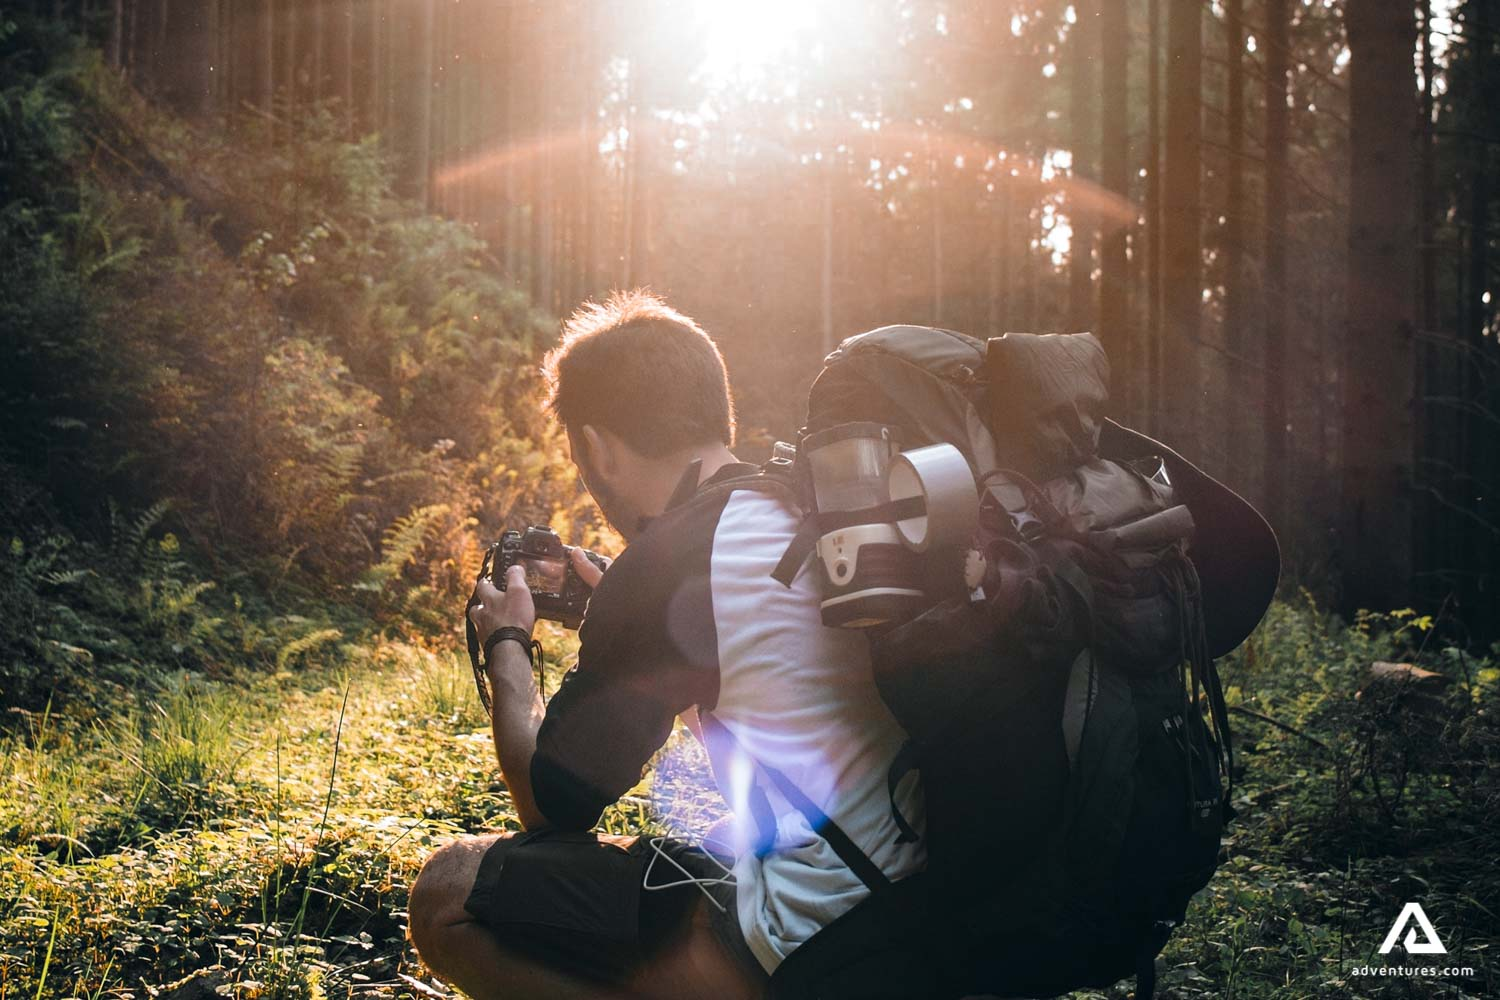 Taking picture of nature